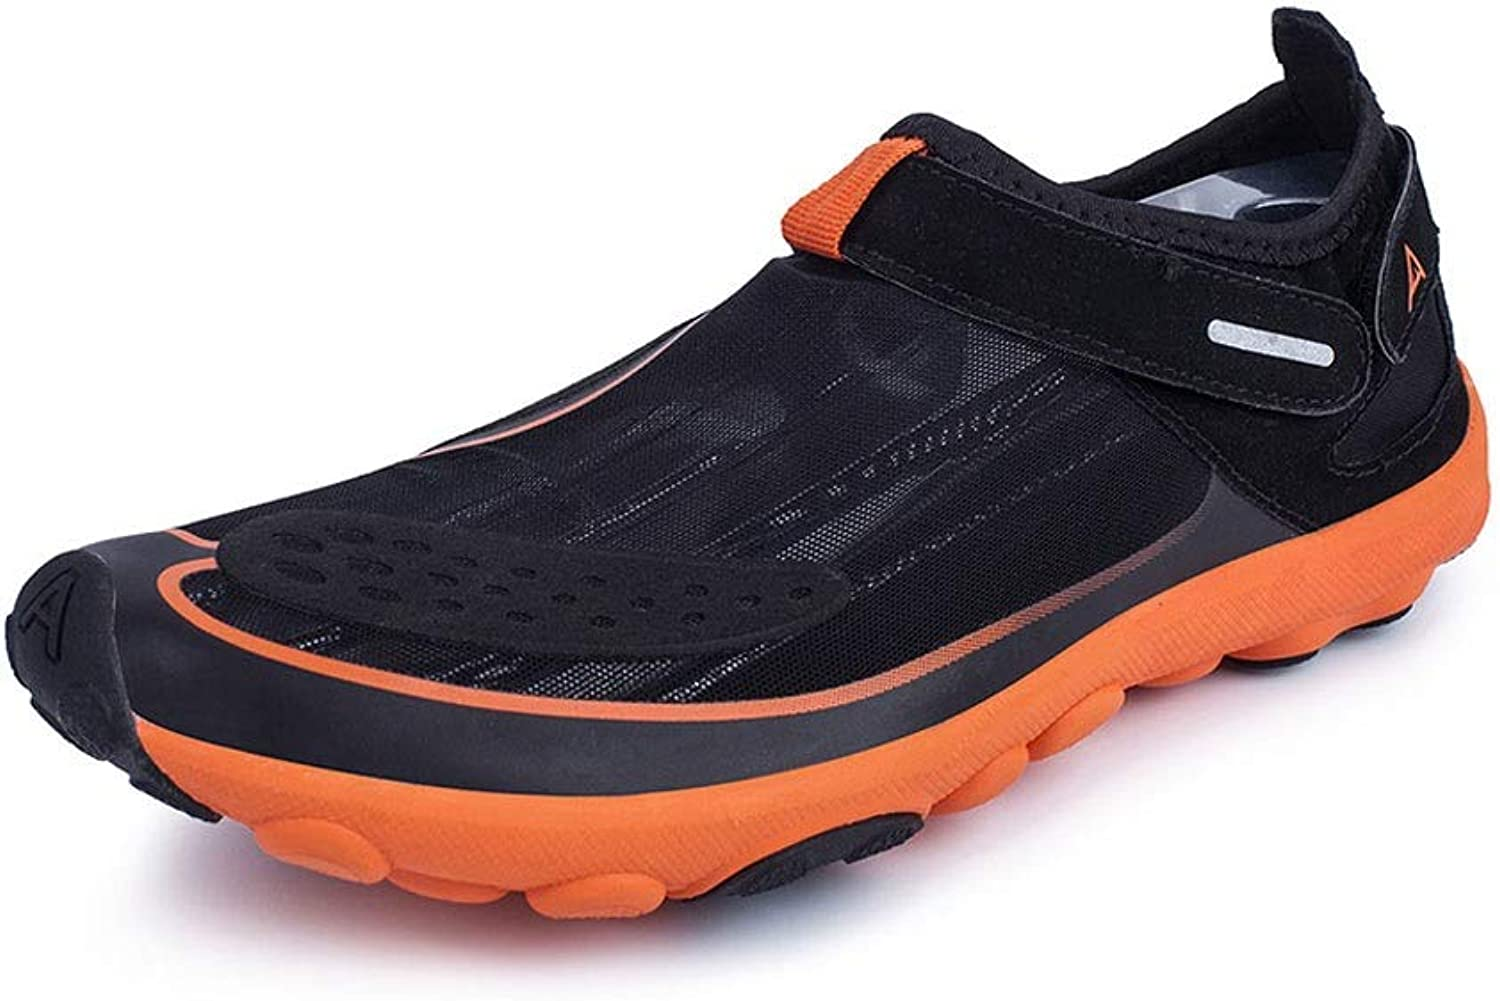 Ailj Water shoes, Men and Women Quick-Drying Diving shoes Outdoor Skid Climbing Wading shoes Drifting 2 Colours